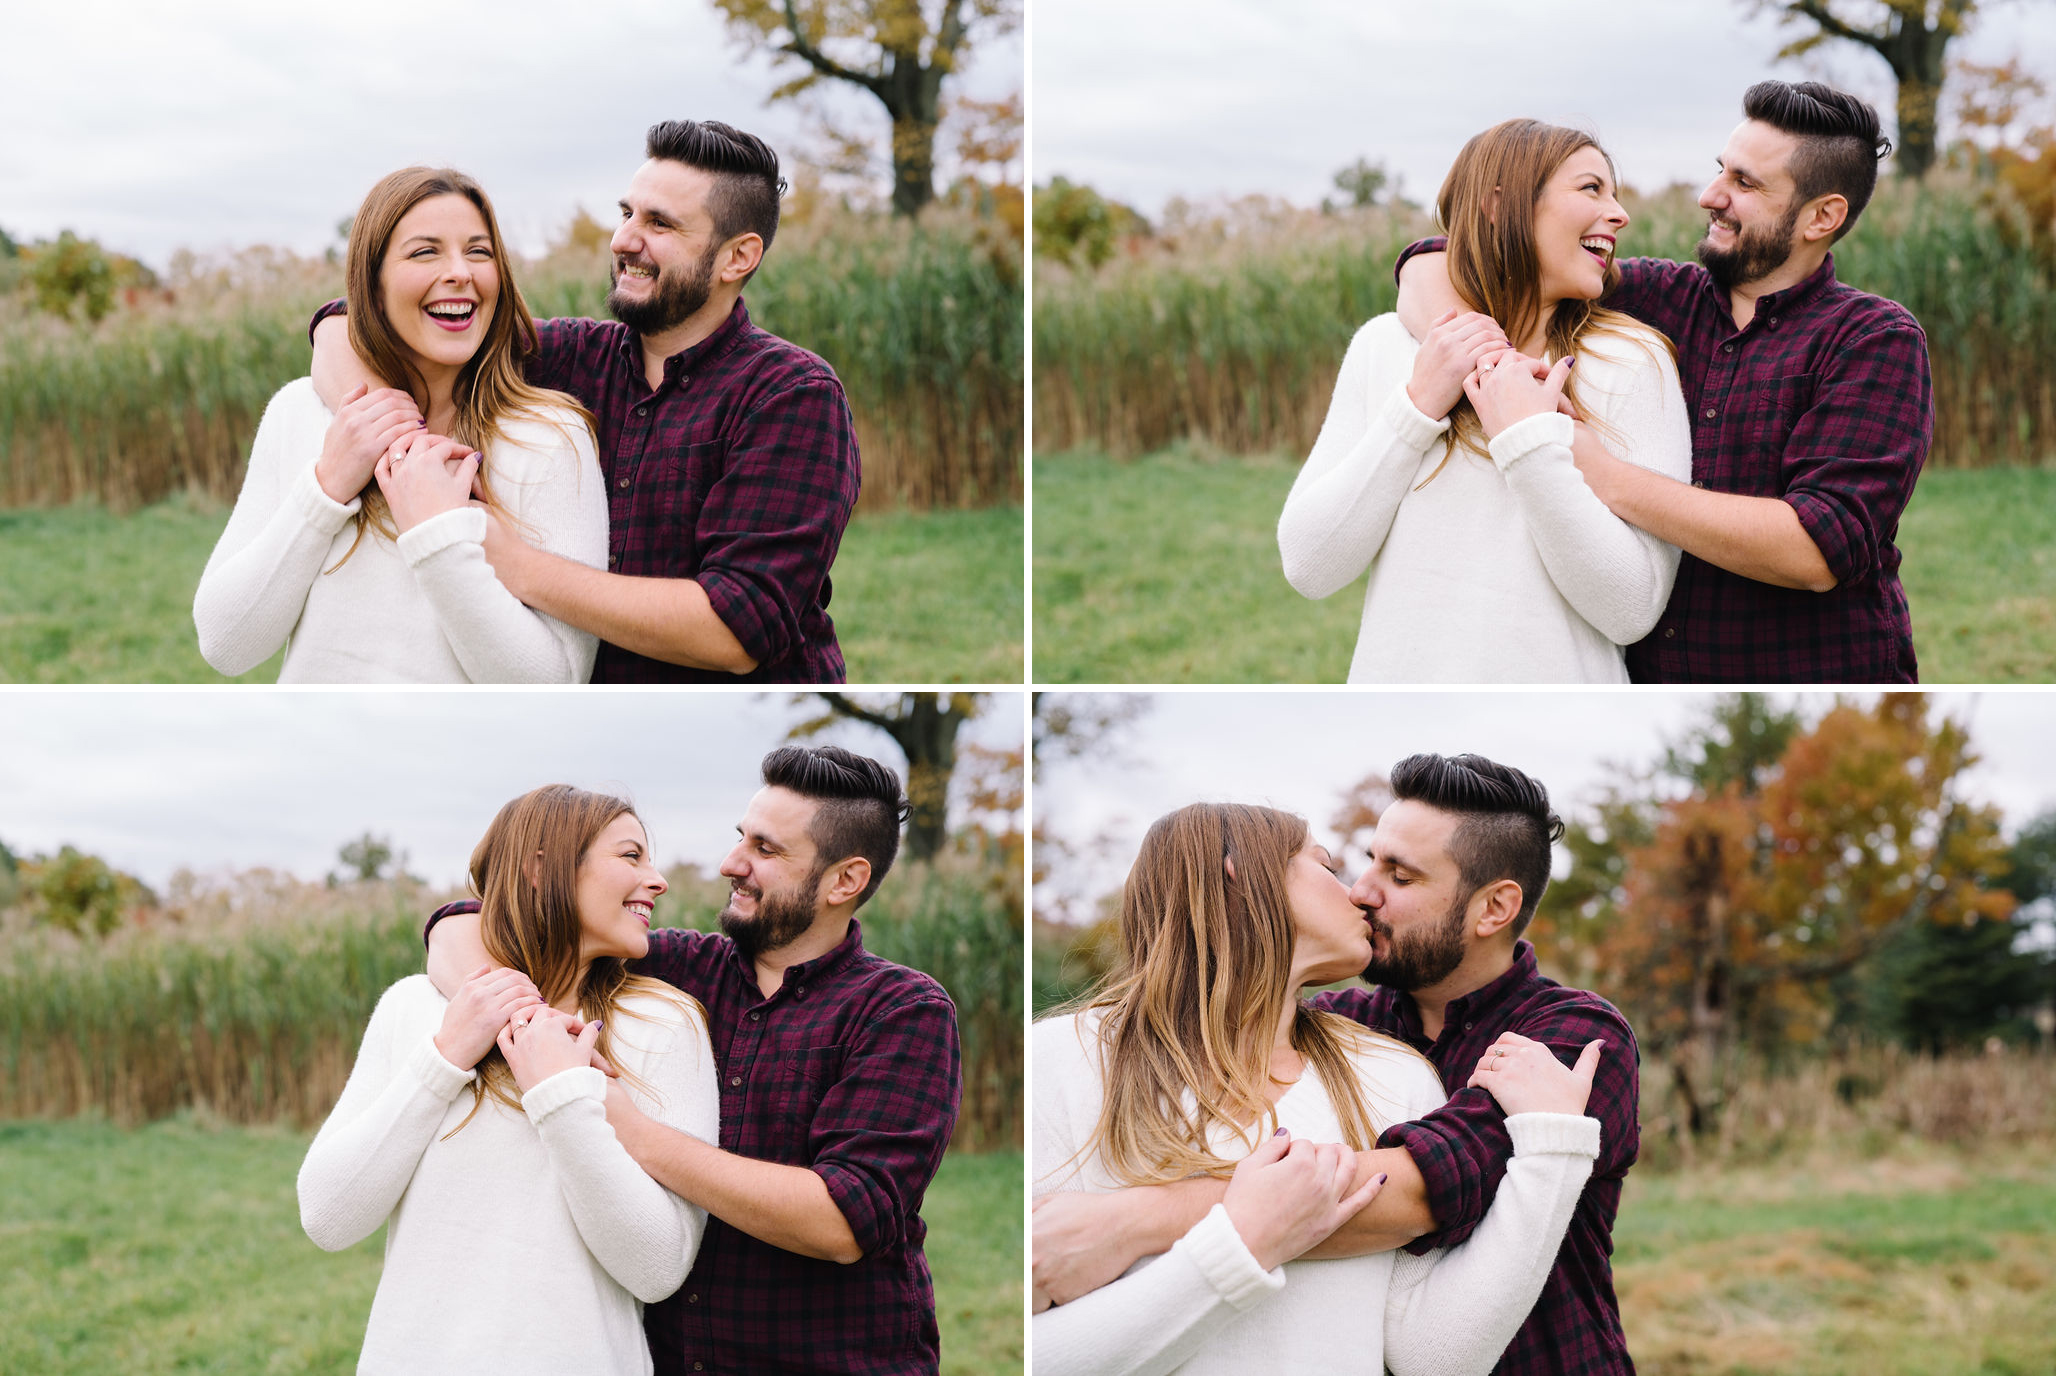 Verona Park Engagement Session- Becky+Mat- Montclair New Jersey- Olivia Christina Photo.2jpg.jpg